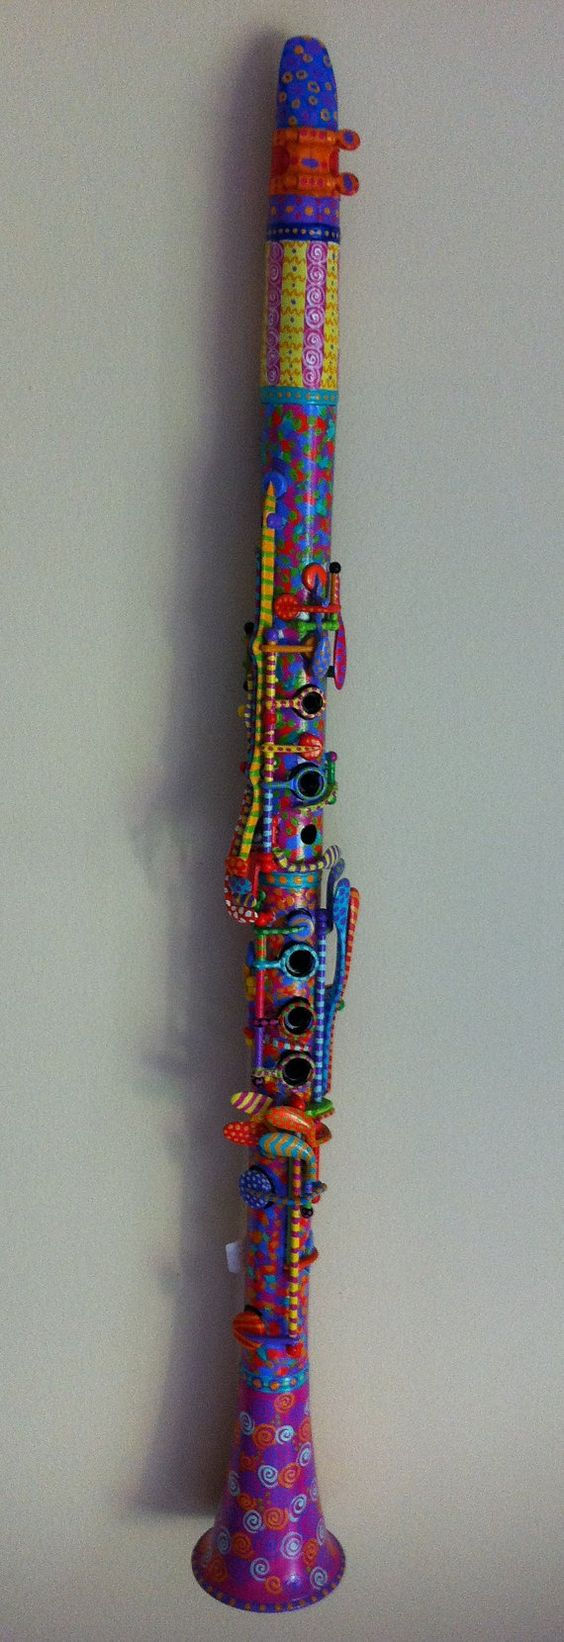 Ok I would never do this to my clarinet, but thats pretty awesome haha